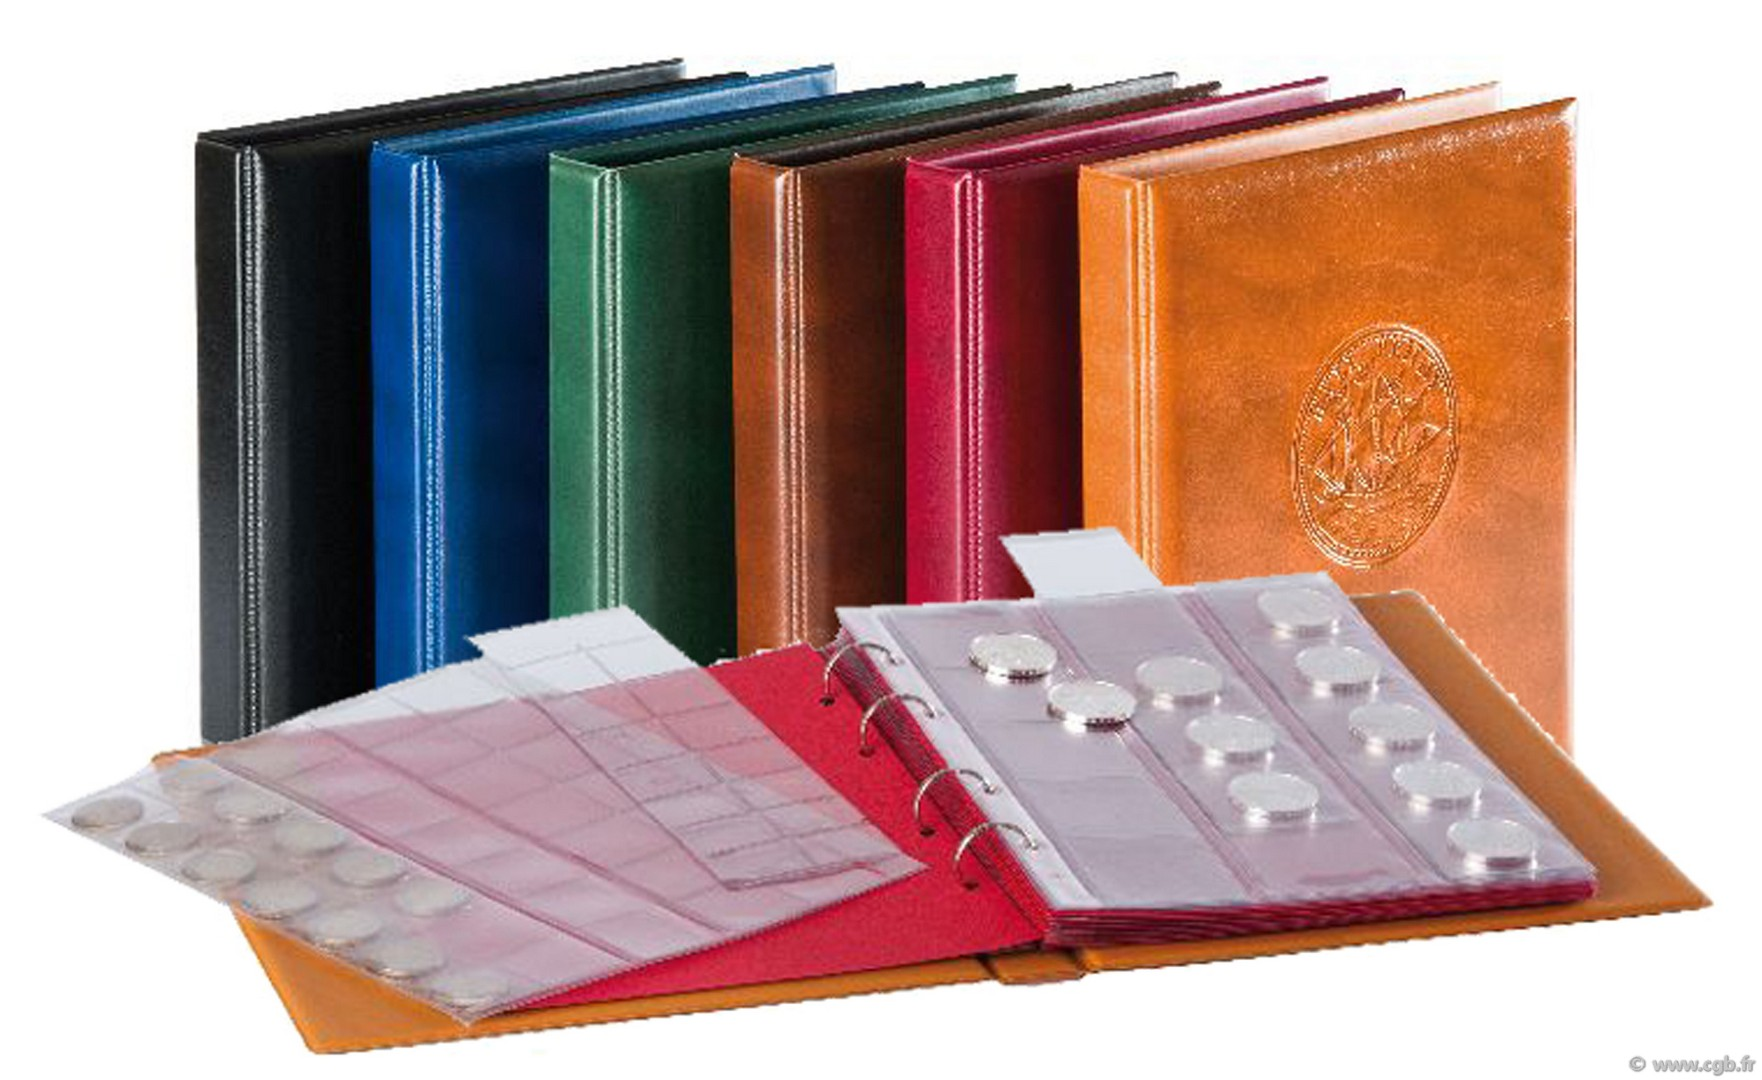 Classeur Louis rouge bordeaux Monnaies avec 10 pages assorties